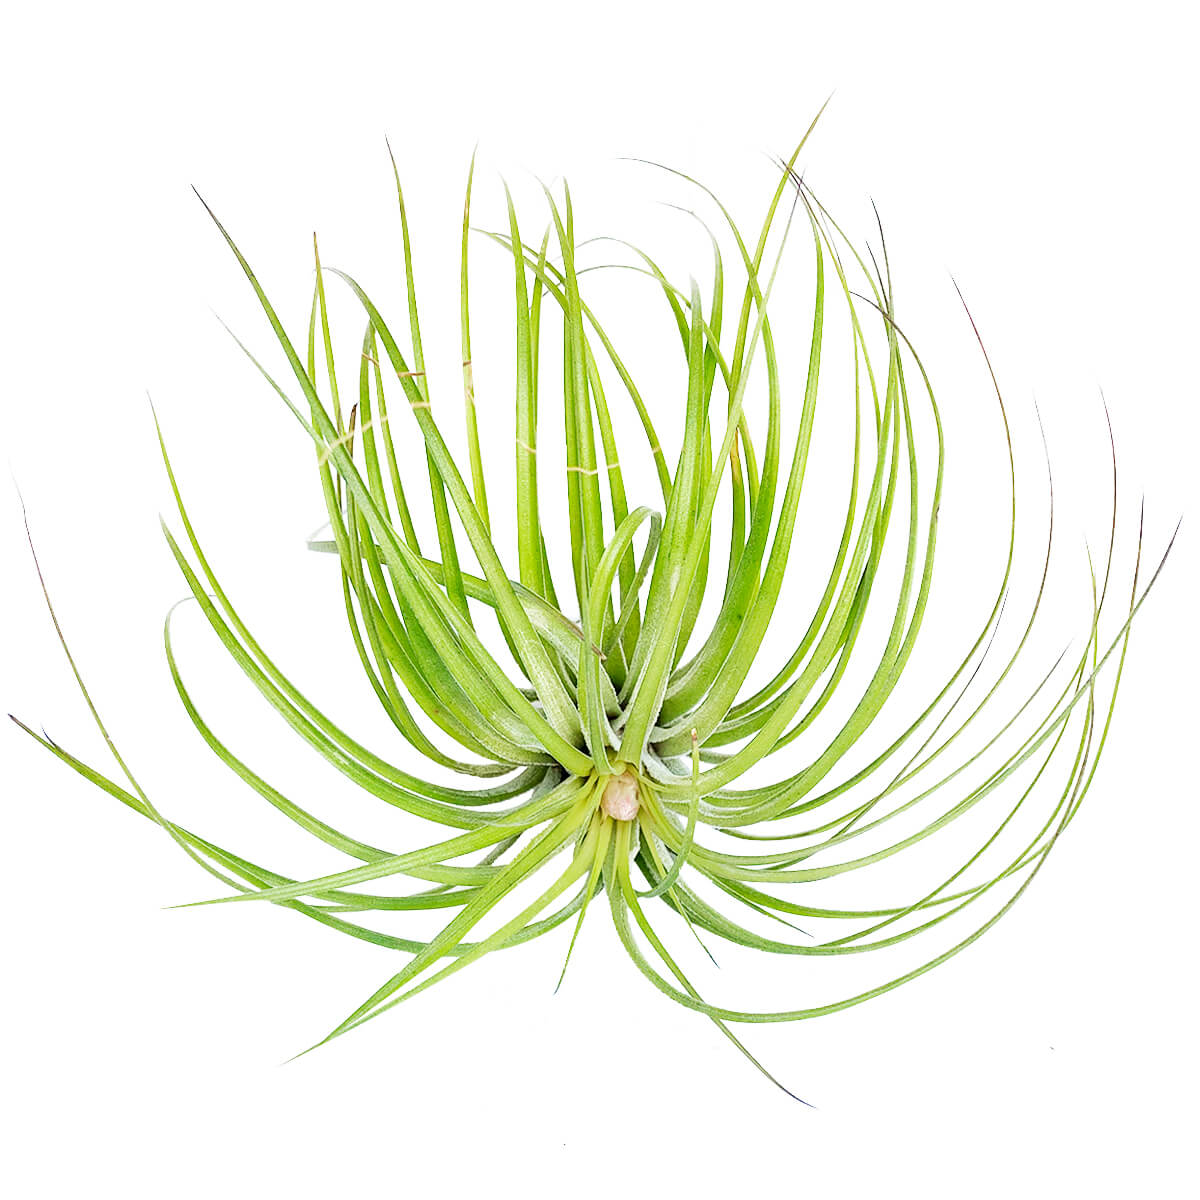 Tillandsia Stricta Green Air Plant for sale, How to grow Stricta Green Air Plant indoor, How to care for Stricta Green Air Plant, Air plants subscription box monthly, Air plants gift ideas, Air plants home office decoration